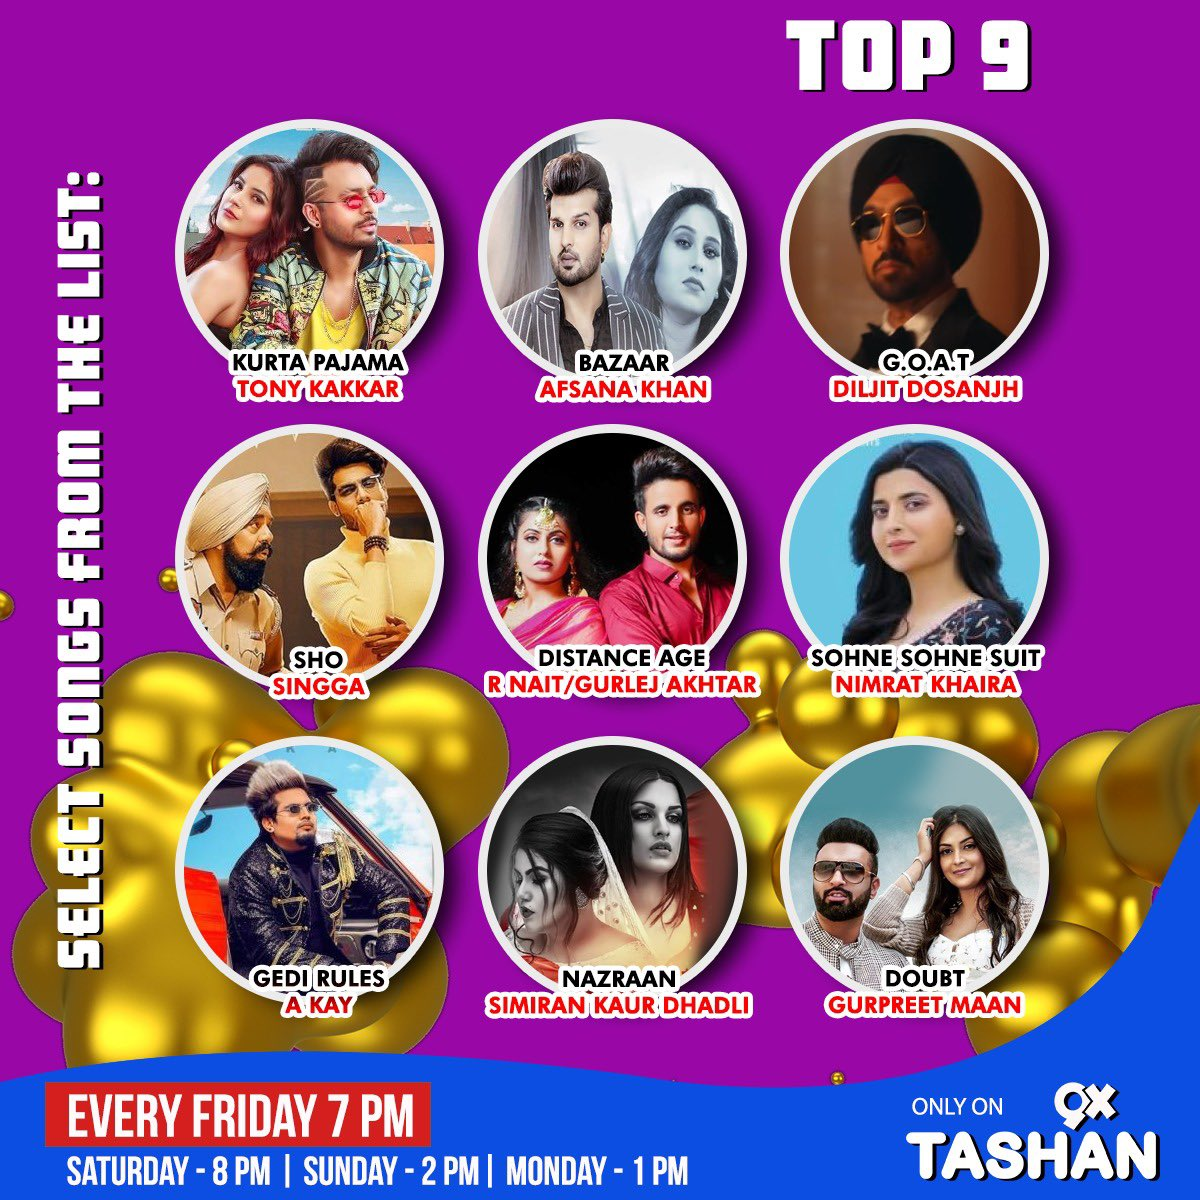 Check out the #Top9 latest Punjabi hits of the #TashanTop9! You can even choose your favourite song of the week and vote for it to the top the chart!   #9xtashan #punjabihits #punjabimusic #toppunjabisongspic.twitter.com/gGjO0CEBtz